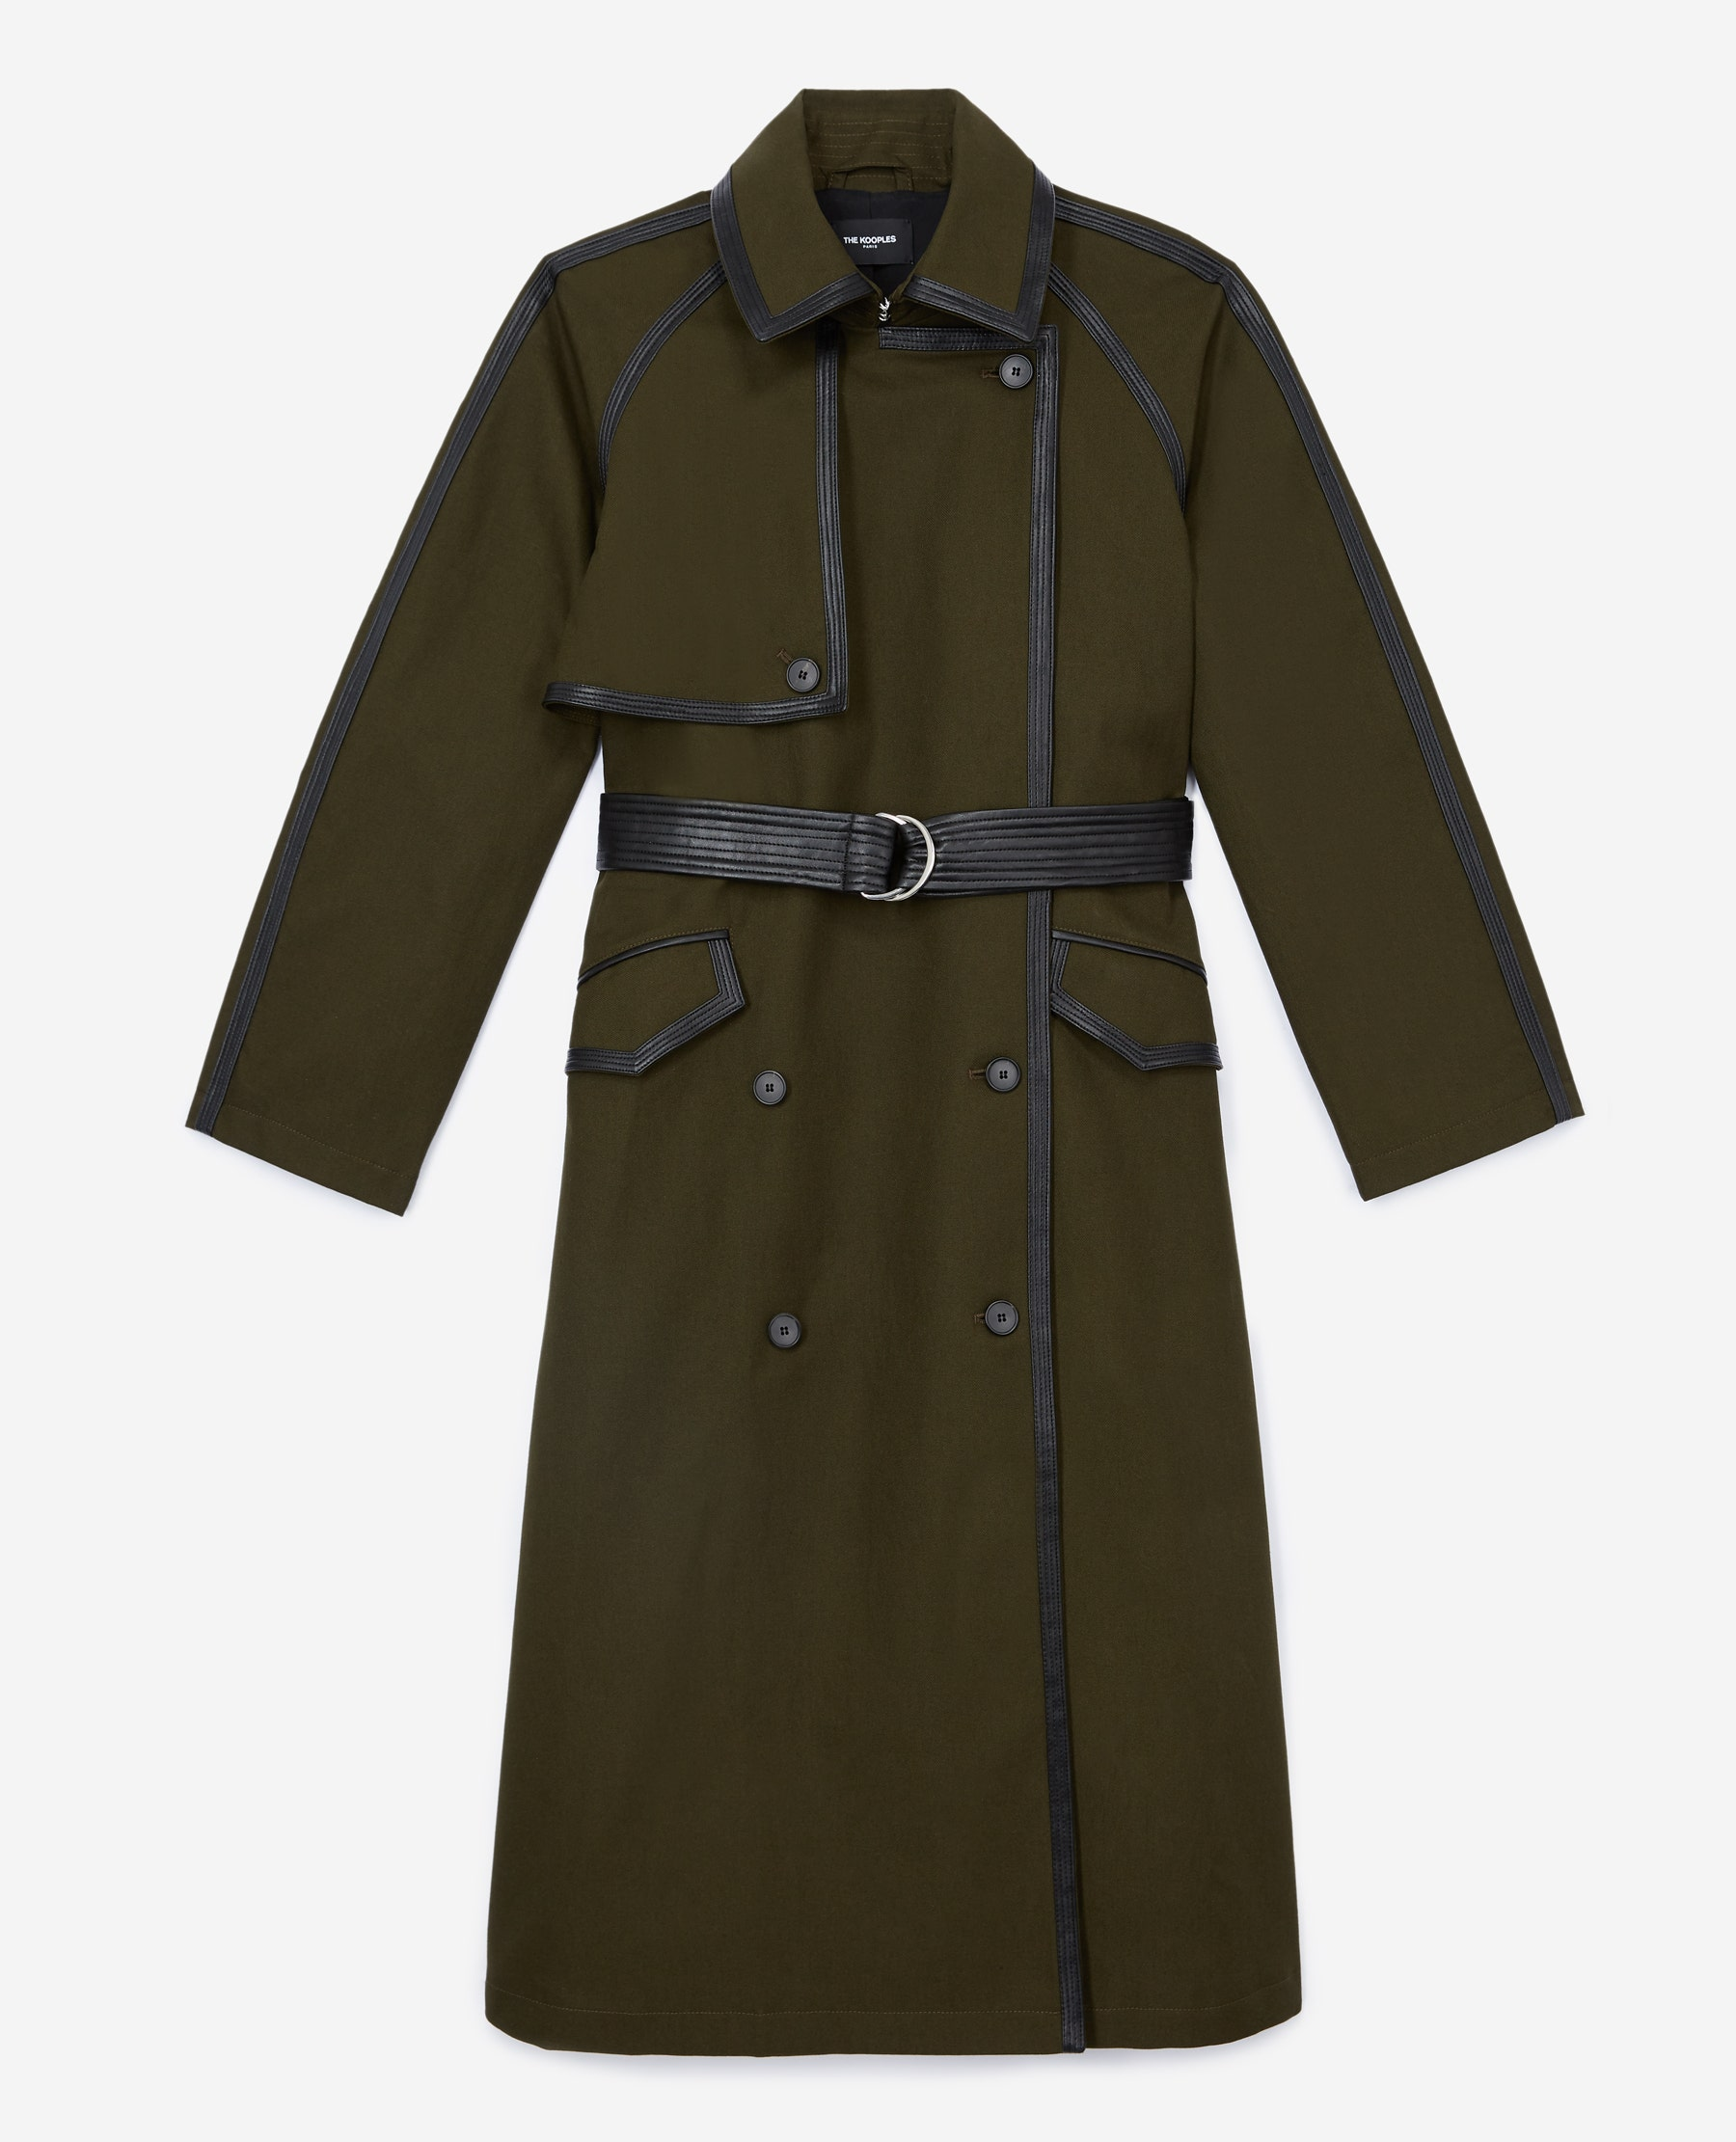 The Kooples - Khaki cotton trench coat with leather belt - WOMEN